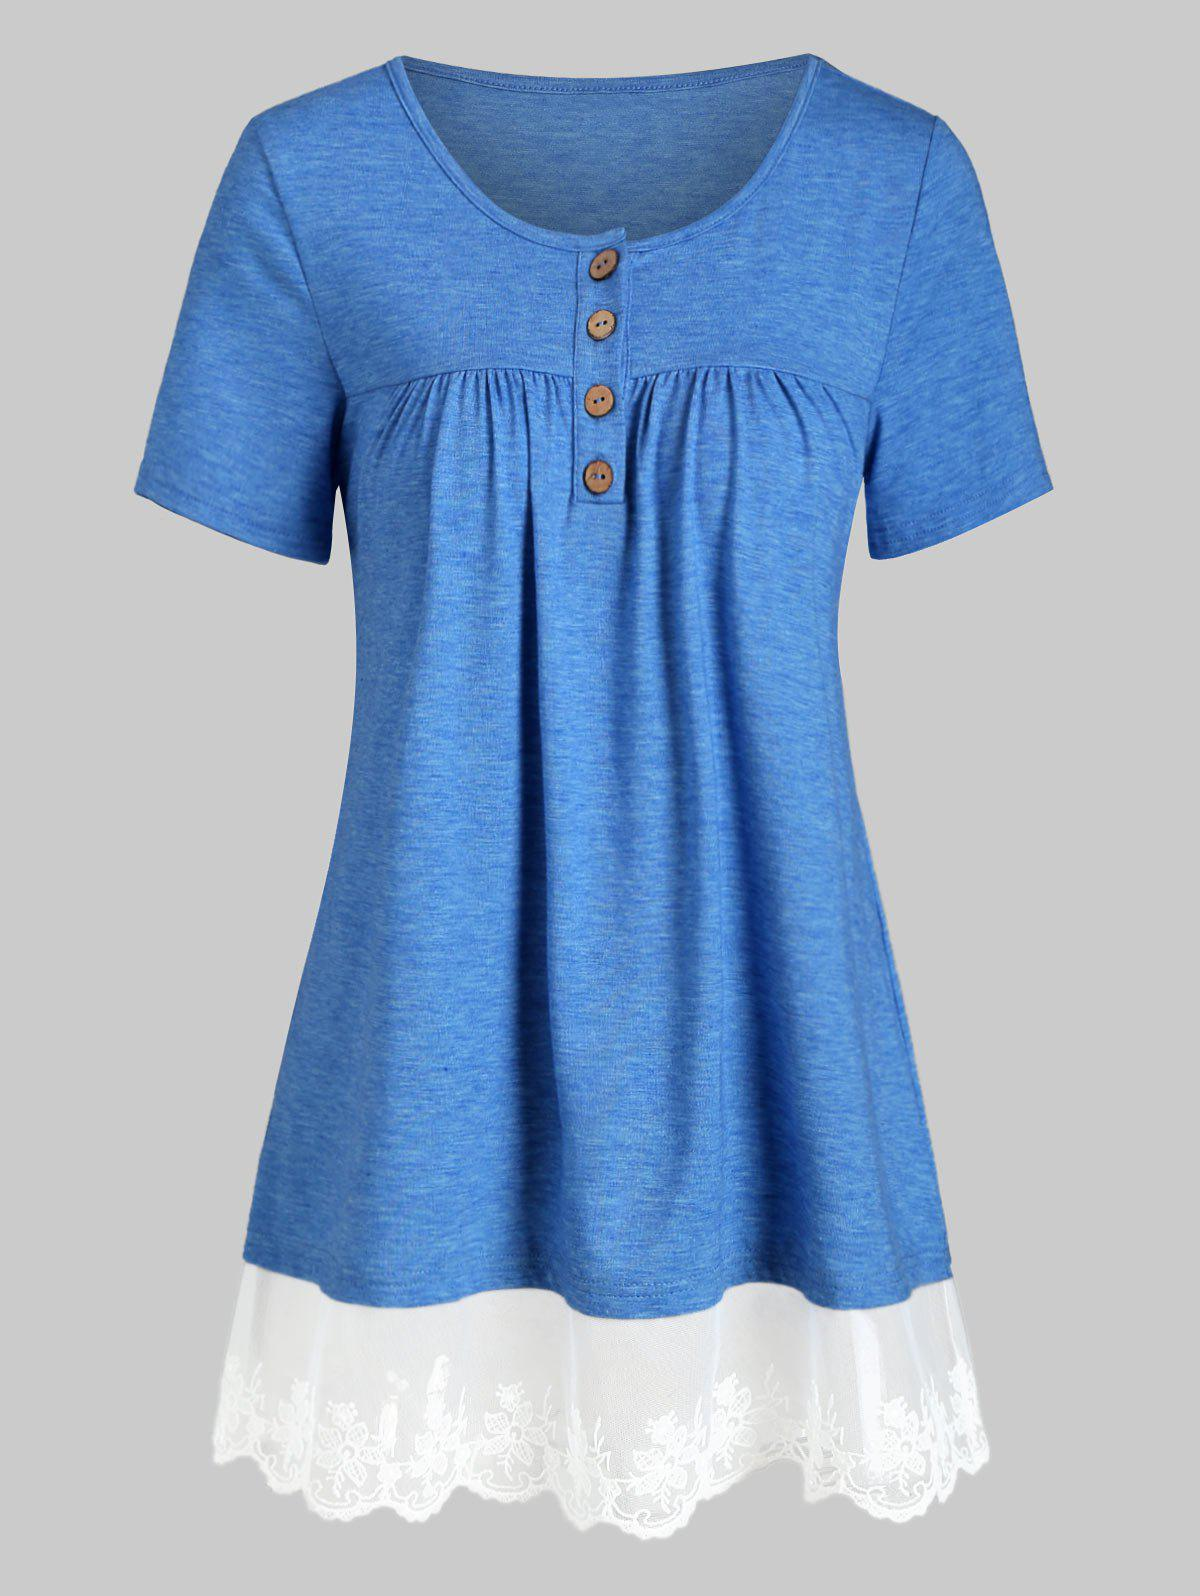 Buy Mesh Panel Flower Embroidered Button Front Tunic Tee